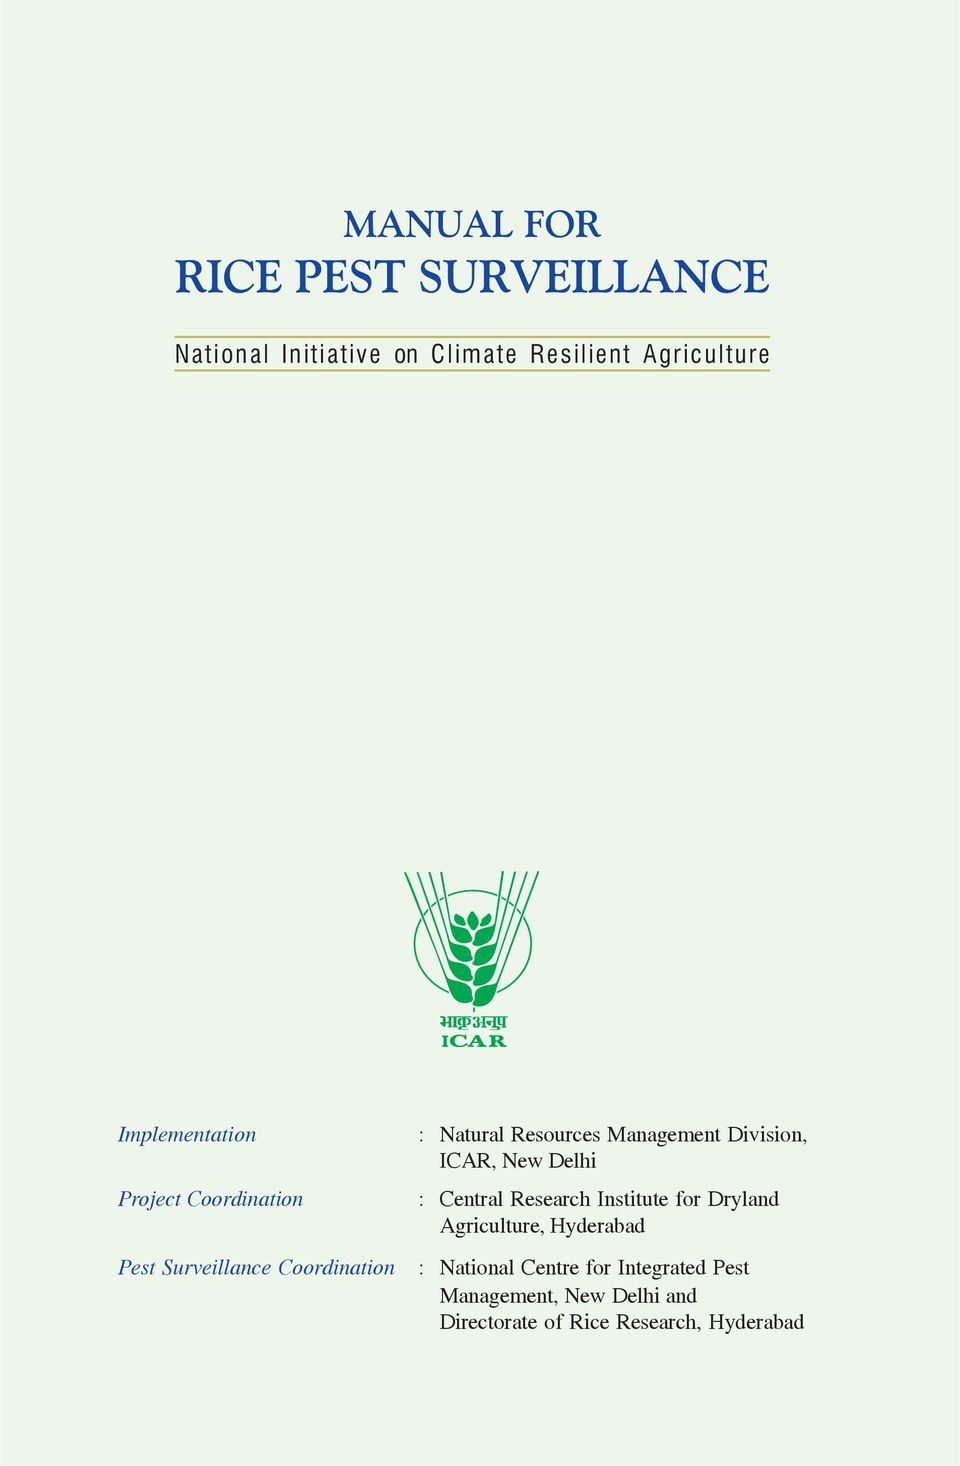 Management Division, ICAR, New Delhi : Central Research Institute for Dryland Agriculture,